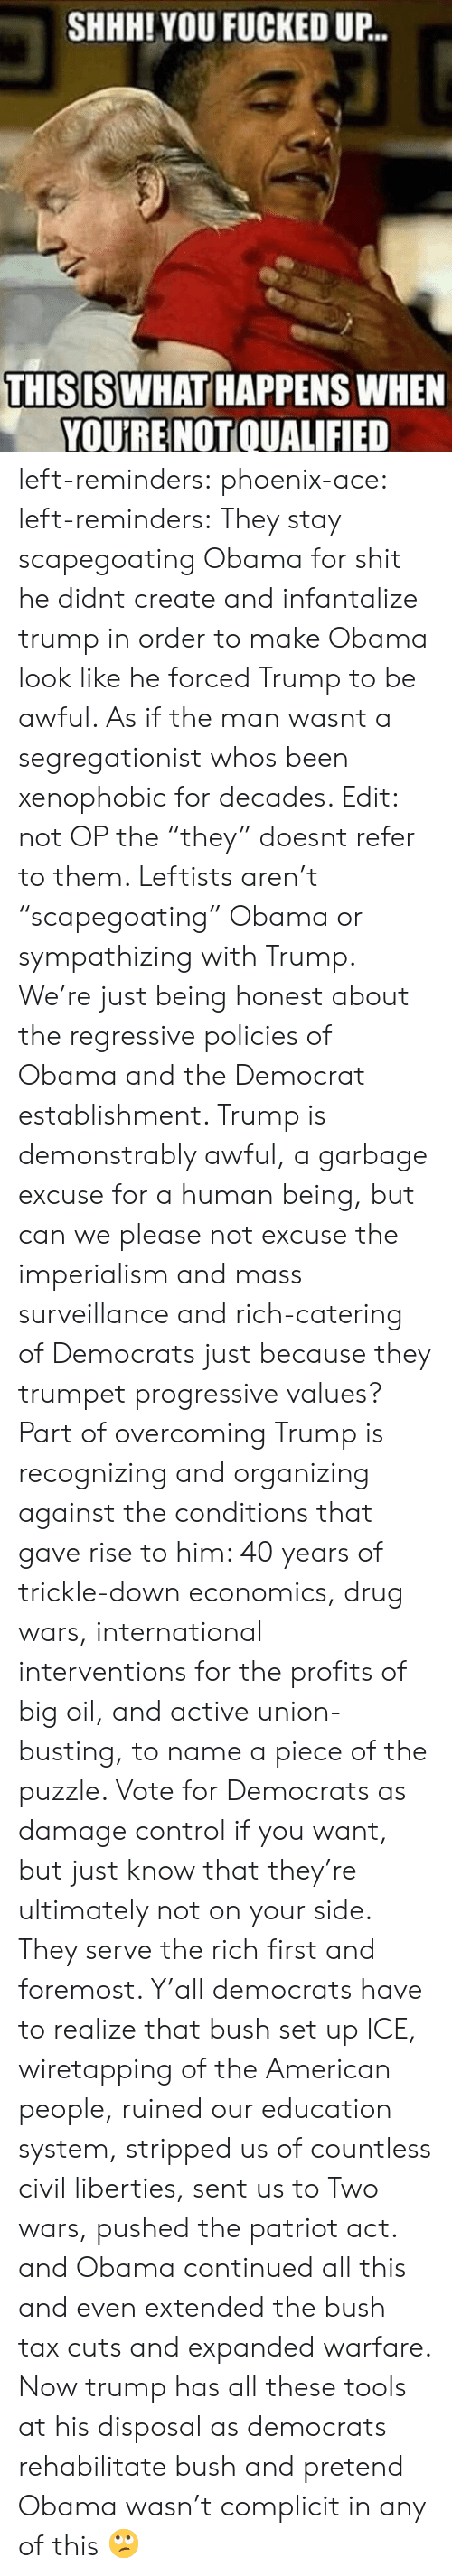 "Organizing: SHHH! YOU FUCKED UP..  THISIS WHAT HAPPENS WHEN  YOU'RE NOT  OUALIFIED left-reminders:  phoenix-ace:  left-reminders: They stay scapegoating Obama for shit he didnt create and infantalize trump in order to make Obama look like he forced Trump to be awful.  As if the man wasnt a segregationist whos been xenophobic for decades.  Edit: not OP the ""they"" doesnt refer to them.    Leftists aren't ""scapegoating"" Obama or sympathizing with Trump. We're just being honest about the regressive policies of Obama and the Democrat establishment. Trump is demonstrably awful, a garbage excuse for a human being, but can we please not excuse the imperialism and mass surveillance and rich-catering of Democrats just because they trumpet progressive values? Part of overcoming Trump is recognizing and organizing against the conditions that gave rise to him: 40 years of trickle-down economics, drug wars, international interventions for the profits of big oil, and active union-busting, to name a piece of the puzzle. Vote for Democrats as damage control if you want, but just know that they're ultimately not on your side. They serve the rich first and foremost.   Y'all democrats have to realize that bush set up ICE, wiretapping of the American people, ruined our education system, stripped us of countless civil liberties, sent us to Two wars, pushed the patriot act. and Obama continued all this and even extended the bush tax cuts and expanded warfare. Now trump has all these tools at his disposal as democrats rehabilitate bush and pretend Obama wasn't complicit in any of this 🙄"